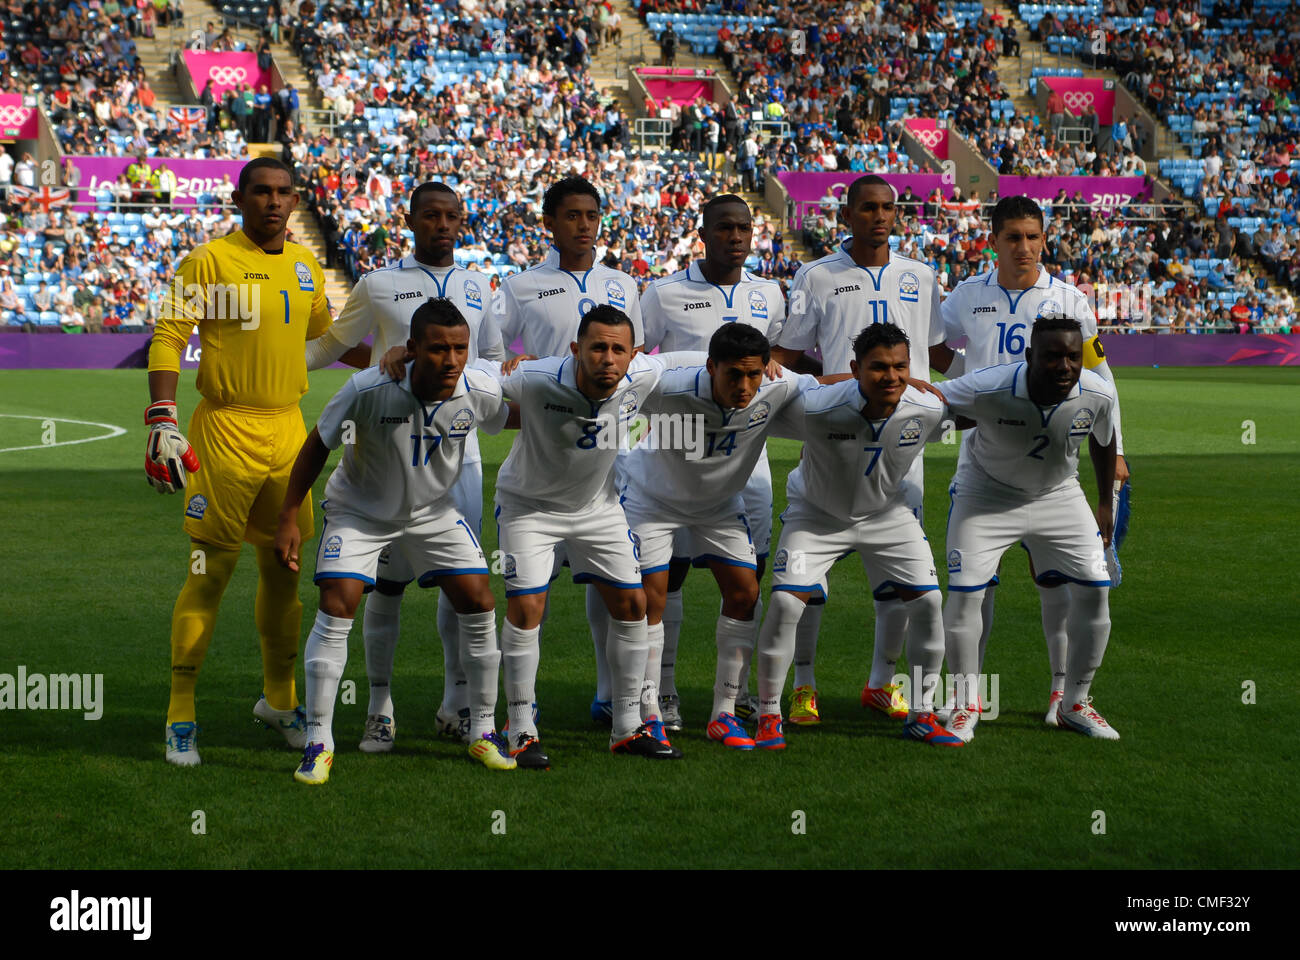 01.08.2012 Coventry, England. Japanese and Honduras Team Line outs before the Olympic Football Men's Preliminary - Stock Image